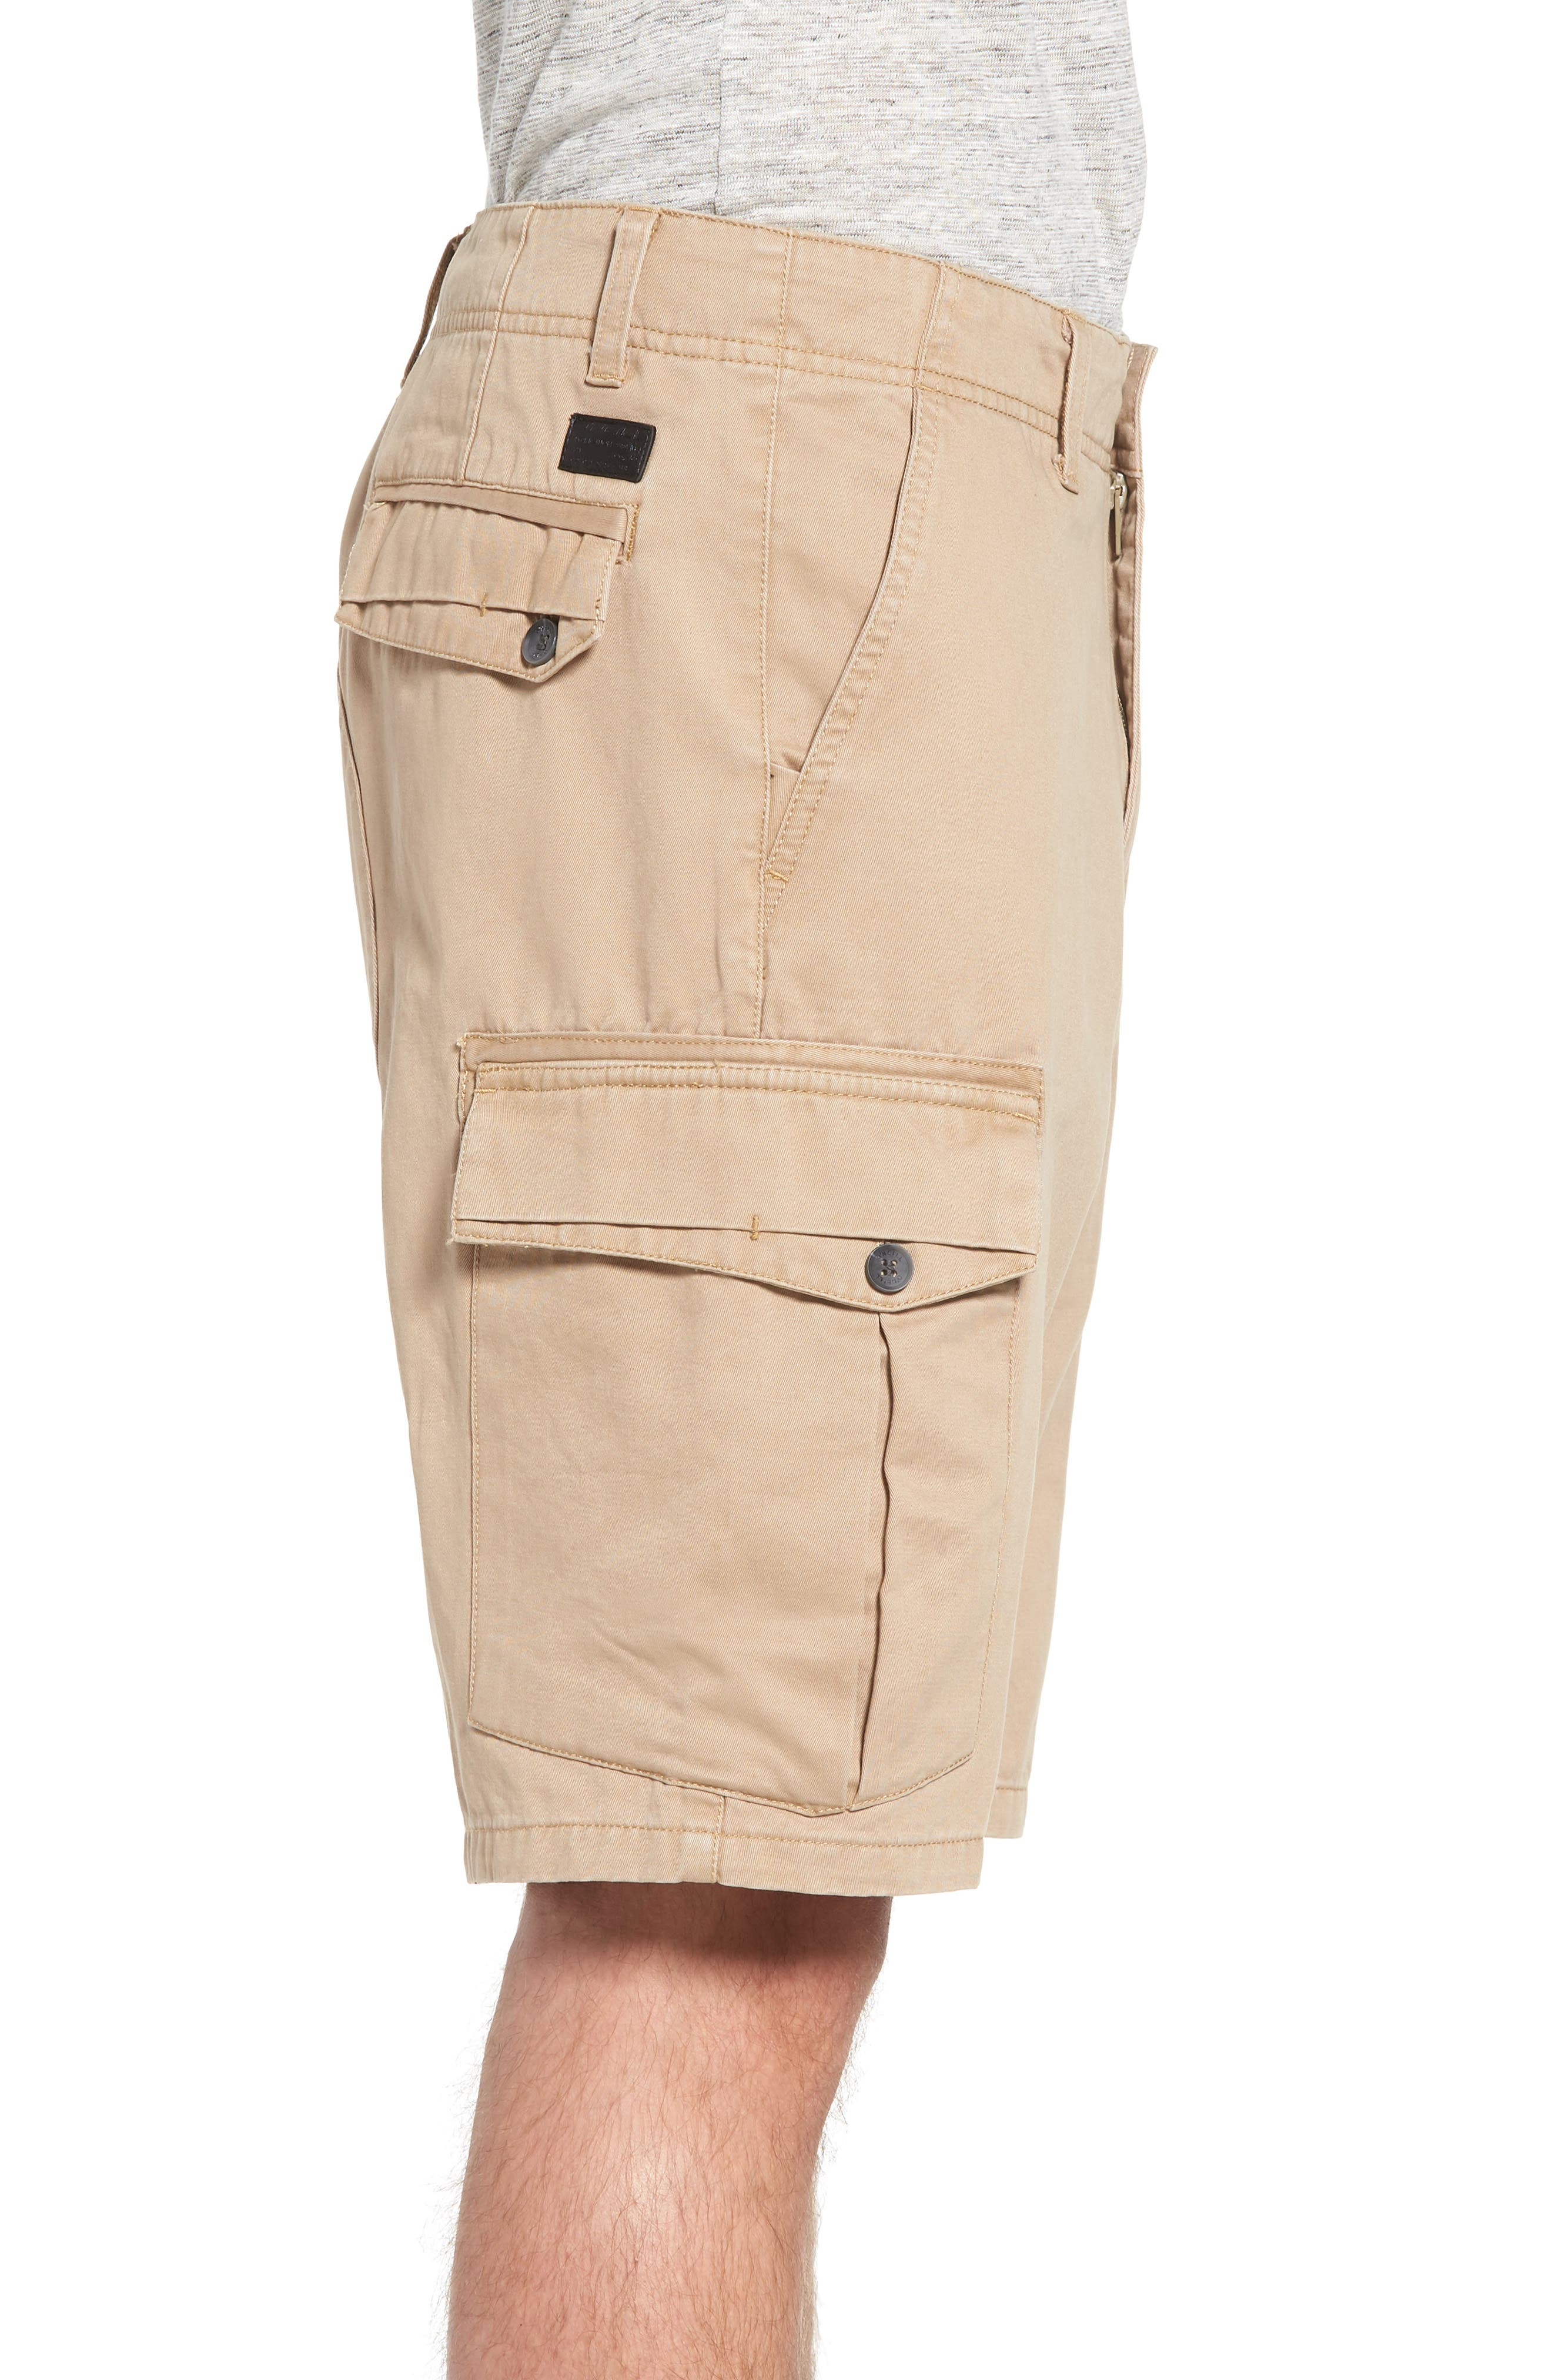 Campbell Cargo Shorts,                             Alternate thumbnail 3, color,                             251